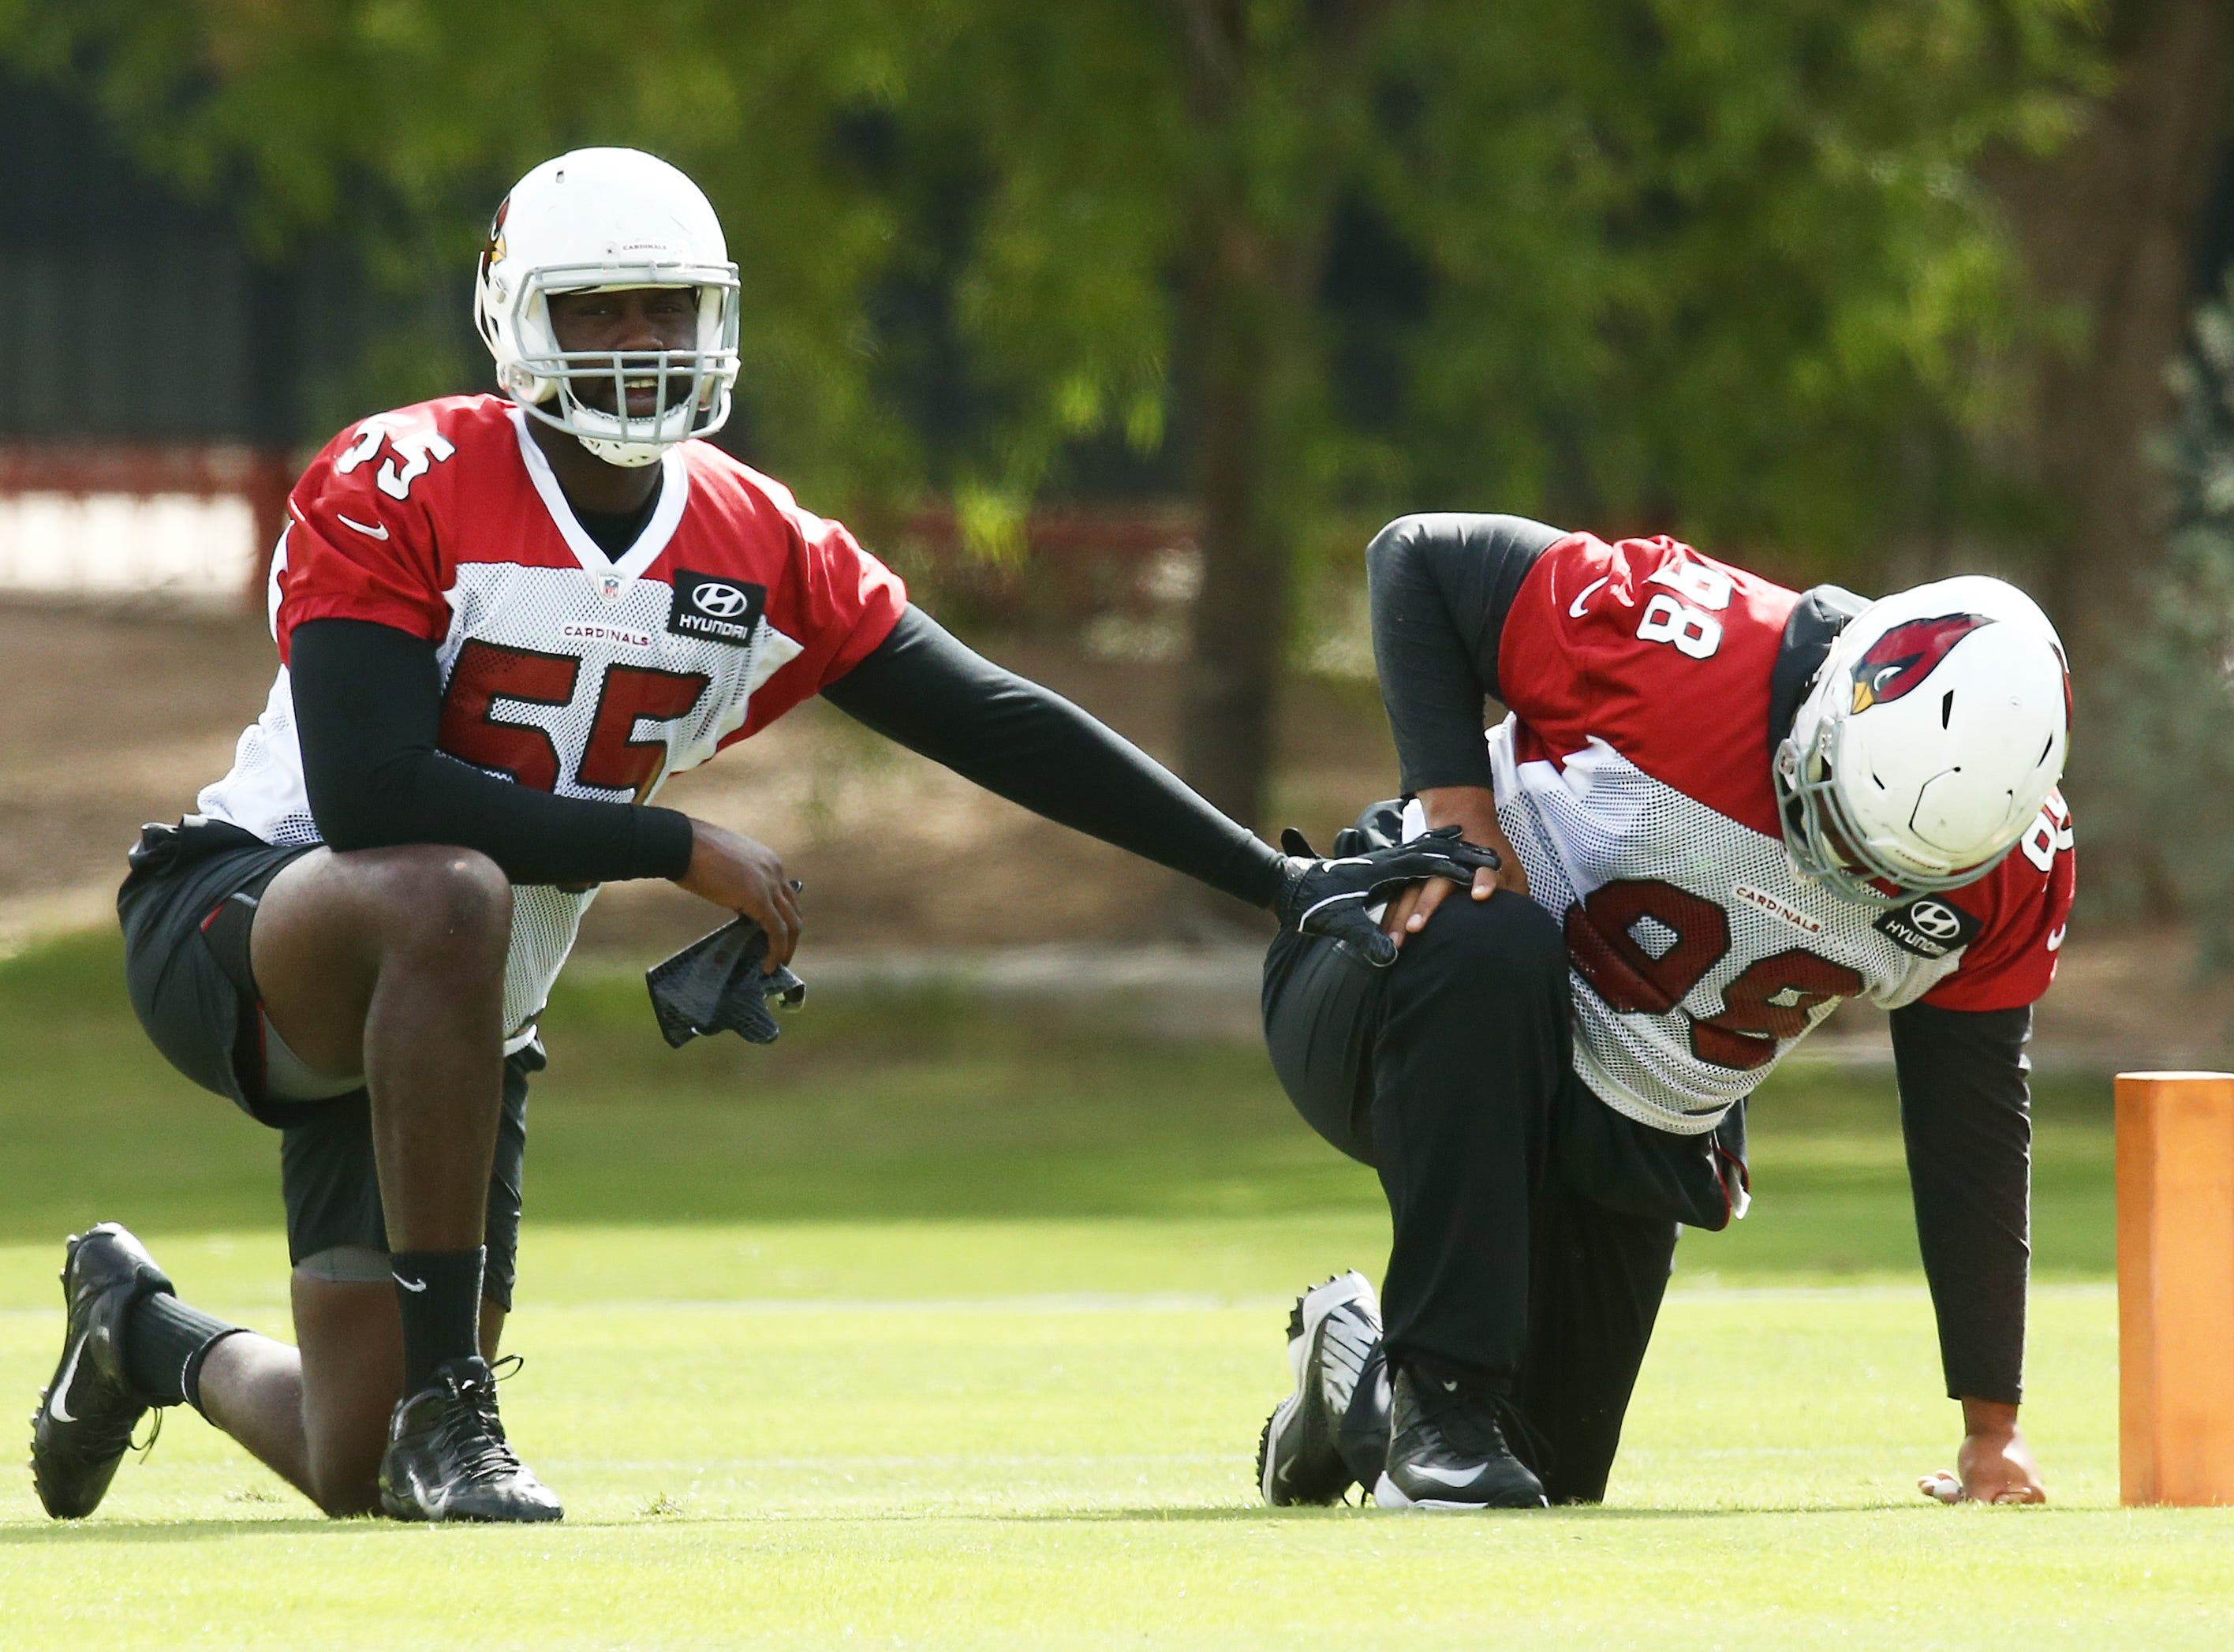 Arizona defensive end Chandler Jones (55) and defensive tackle Corey Peterts (98) during practice on Oct. 16, 2018 at the Cardinals Training Facility in Tempe, Ariz.